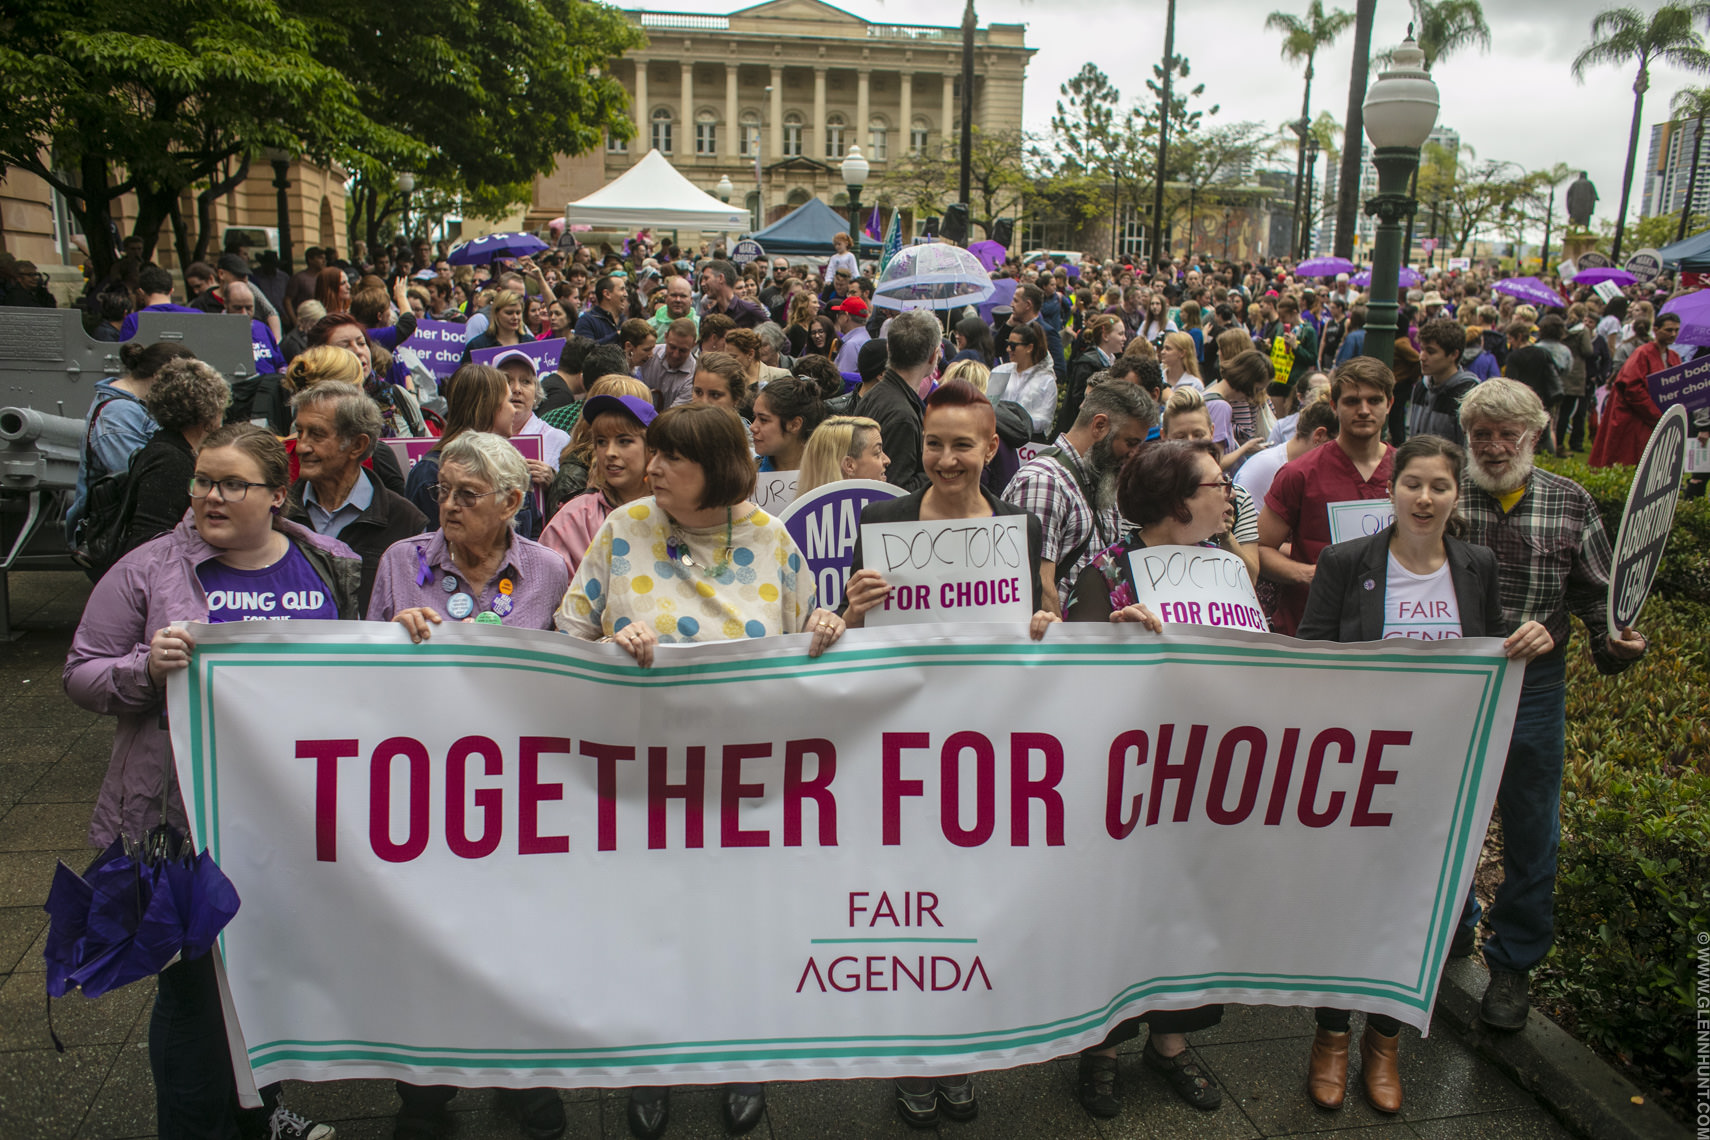 Together For Choice